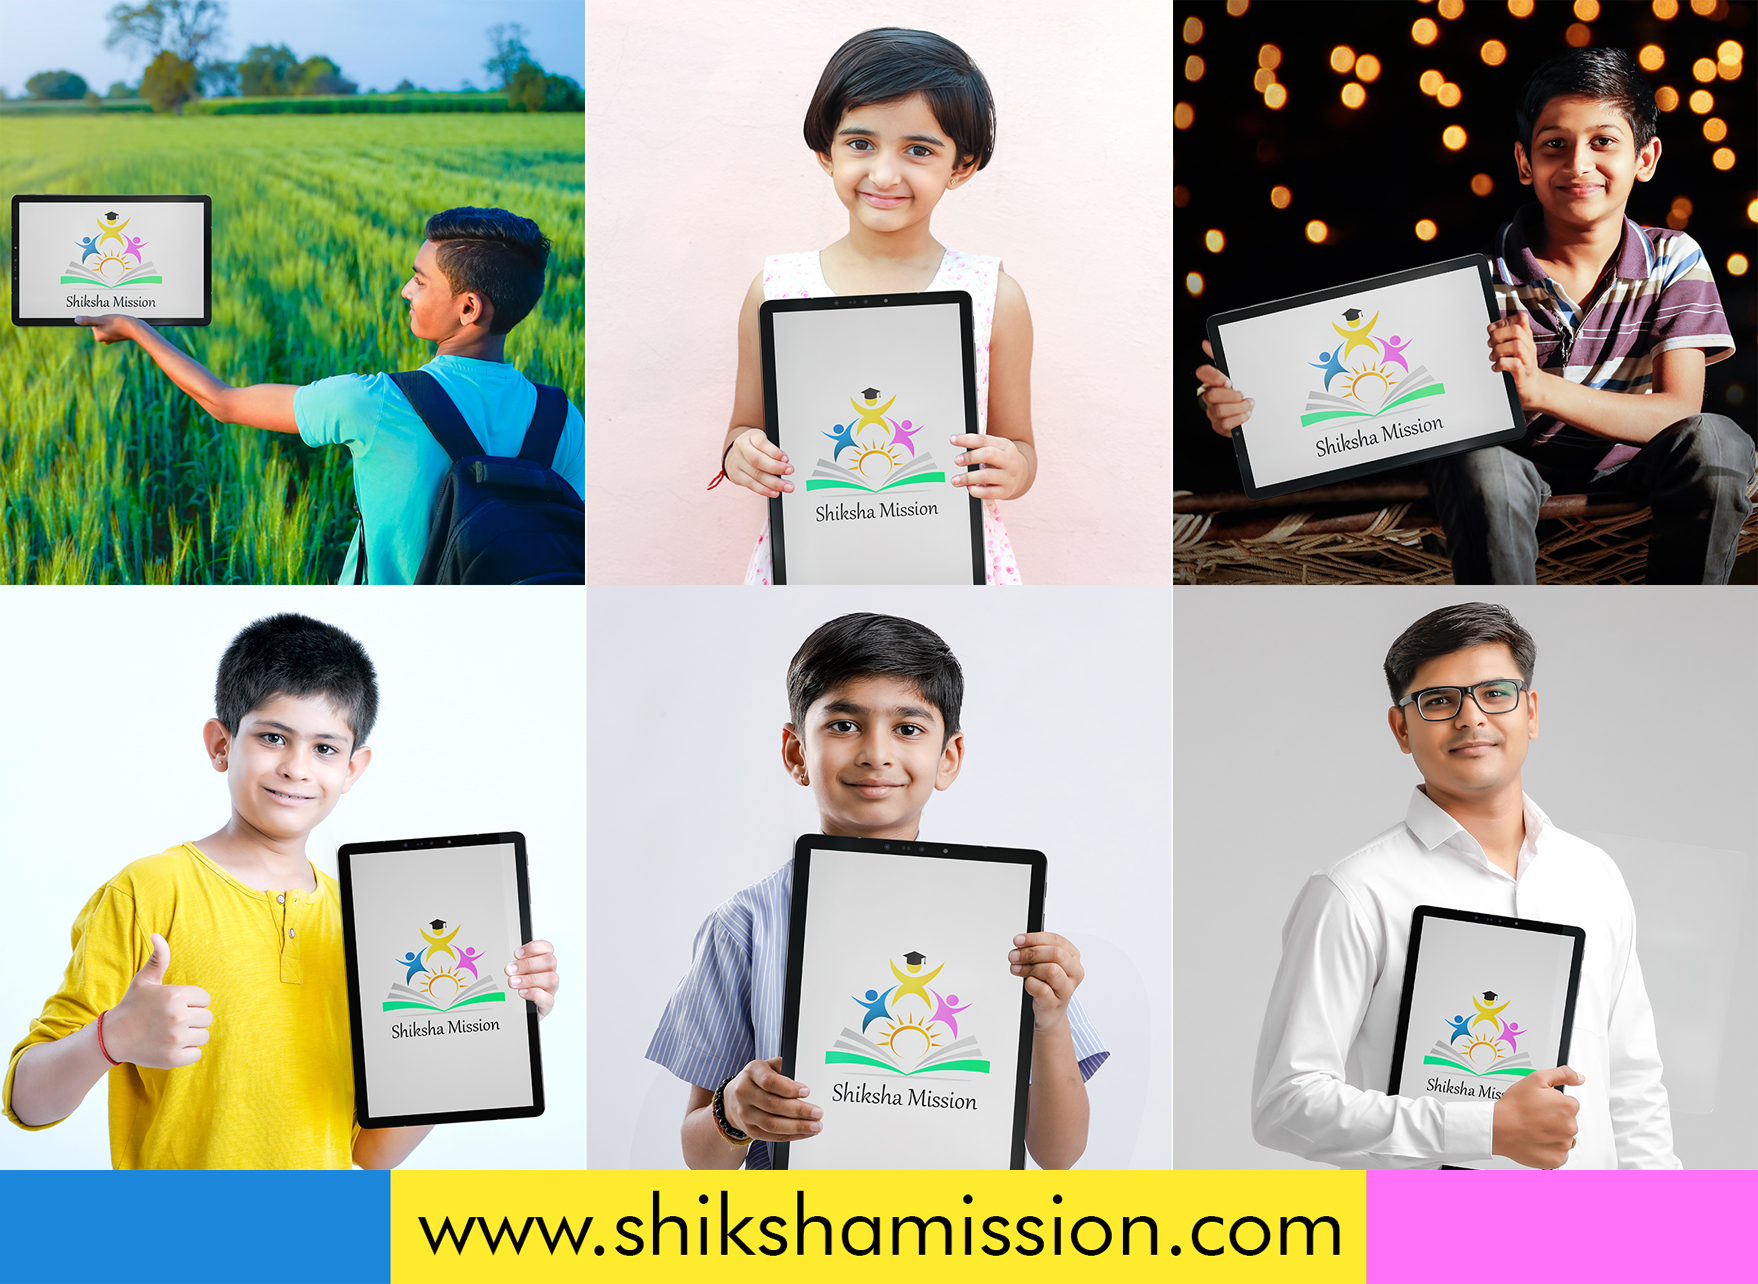 Shiksha Mission